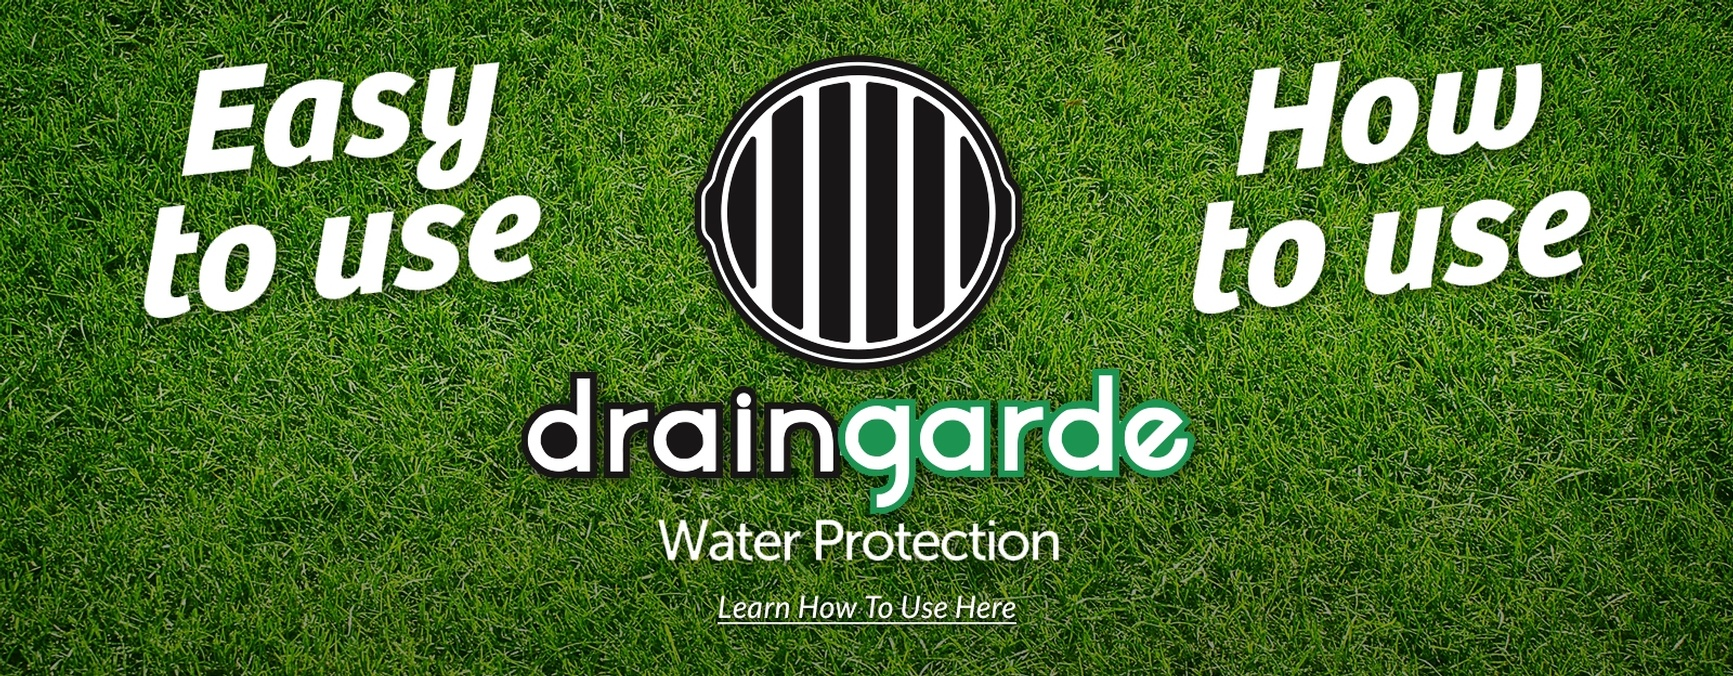 Easy to Use Draingarde Drain Covers For Golf Courses